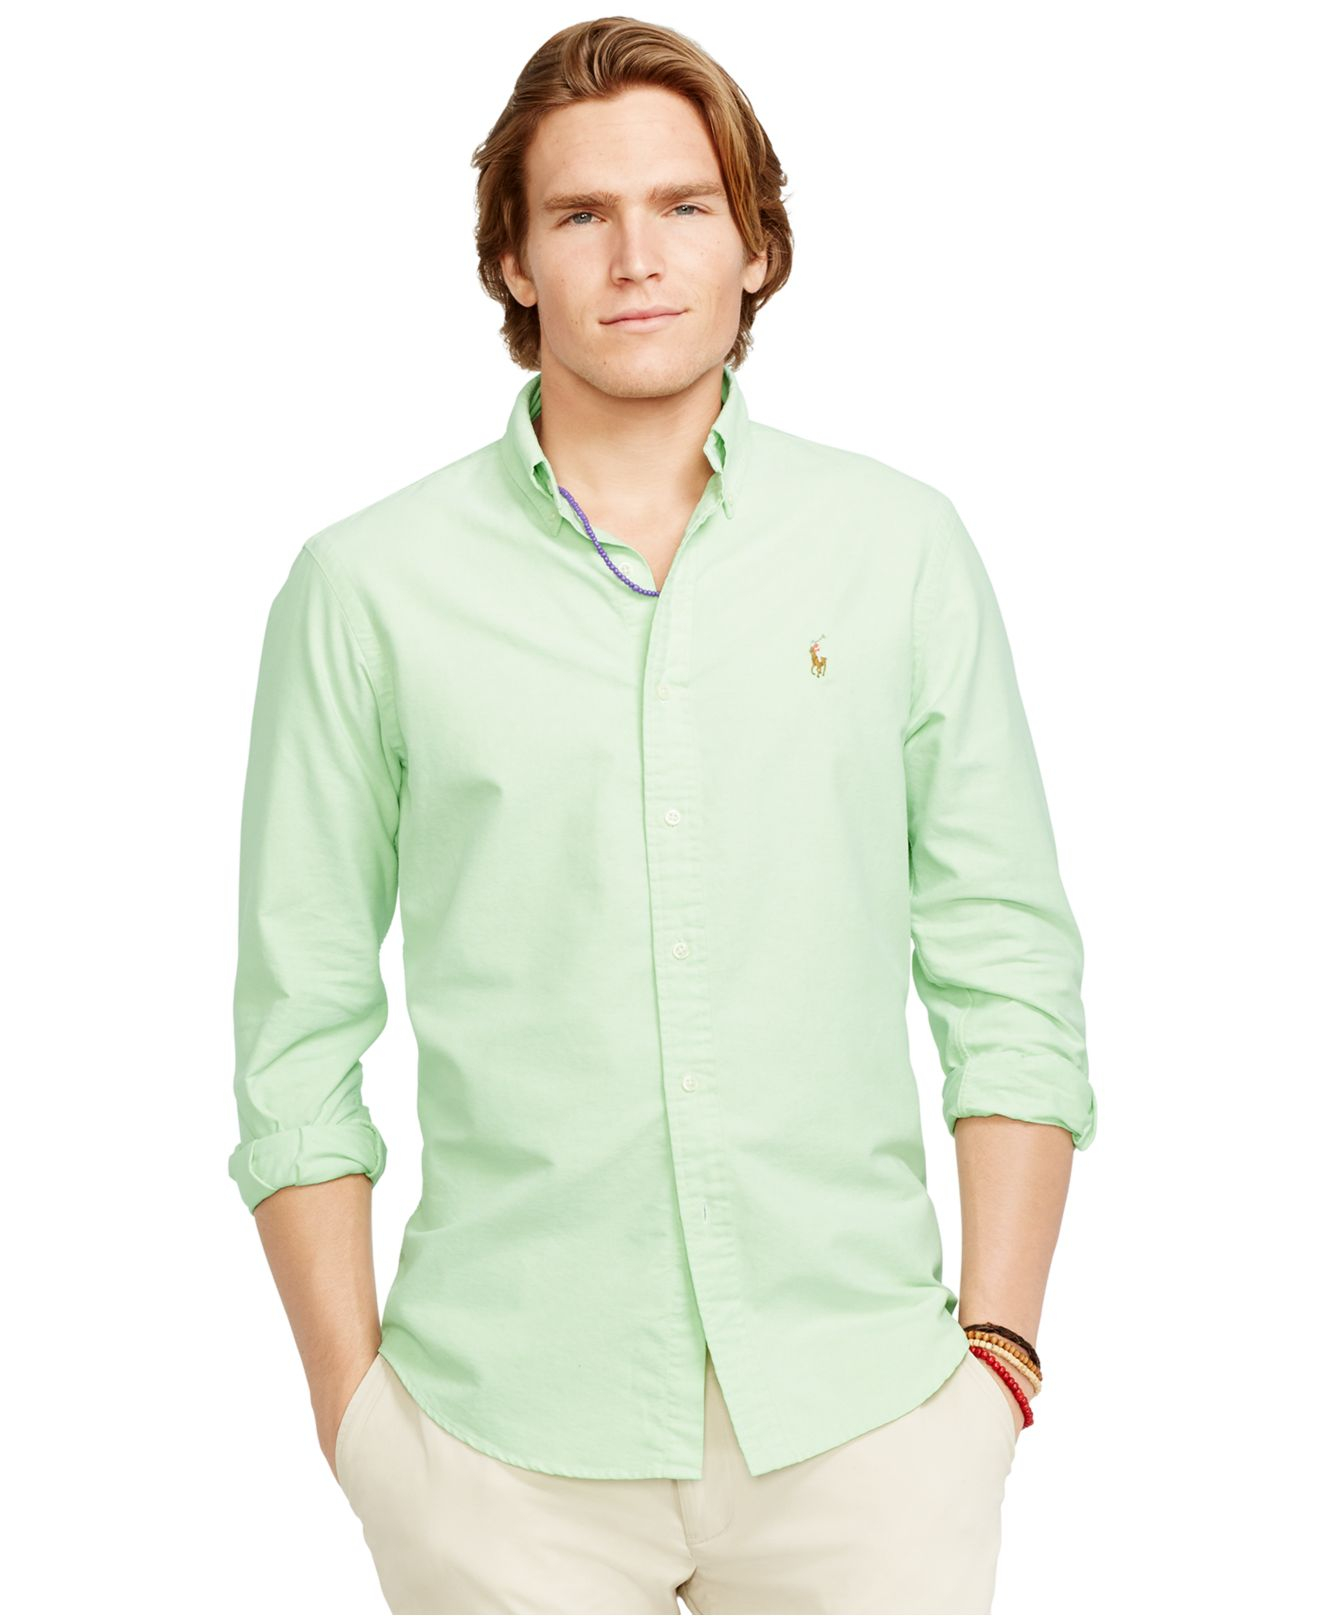 Lyst Polo Ralph Lauren Solid Oxford Shirt In Green For Men